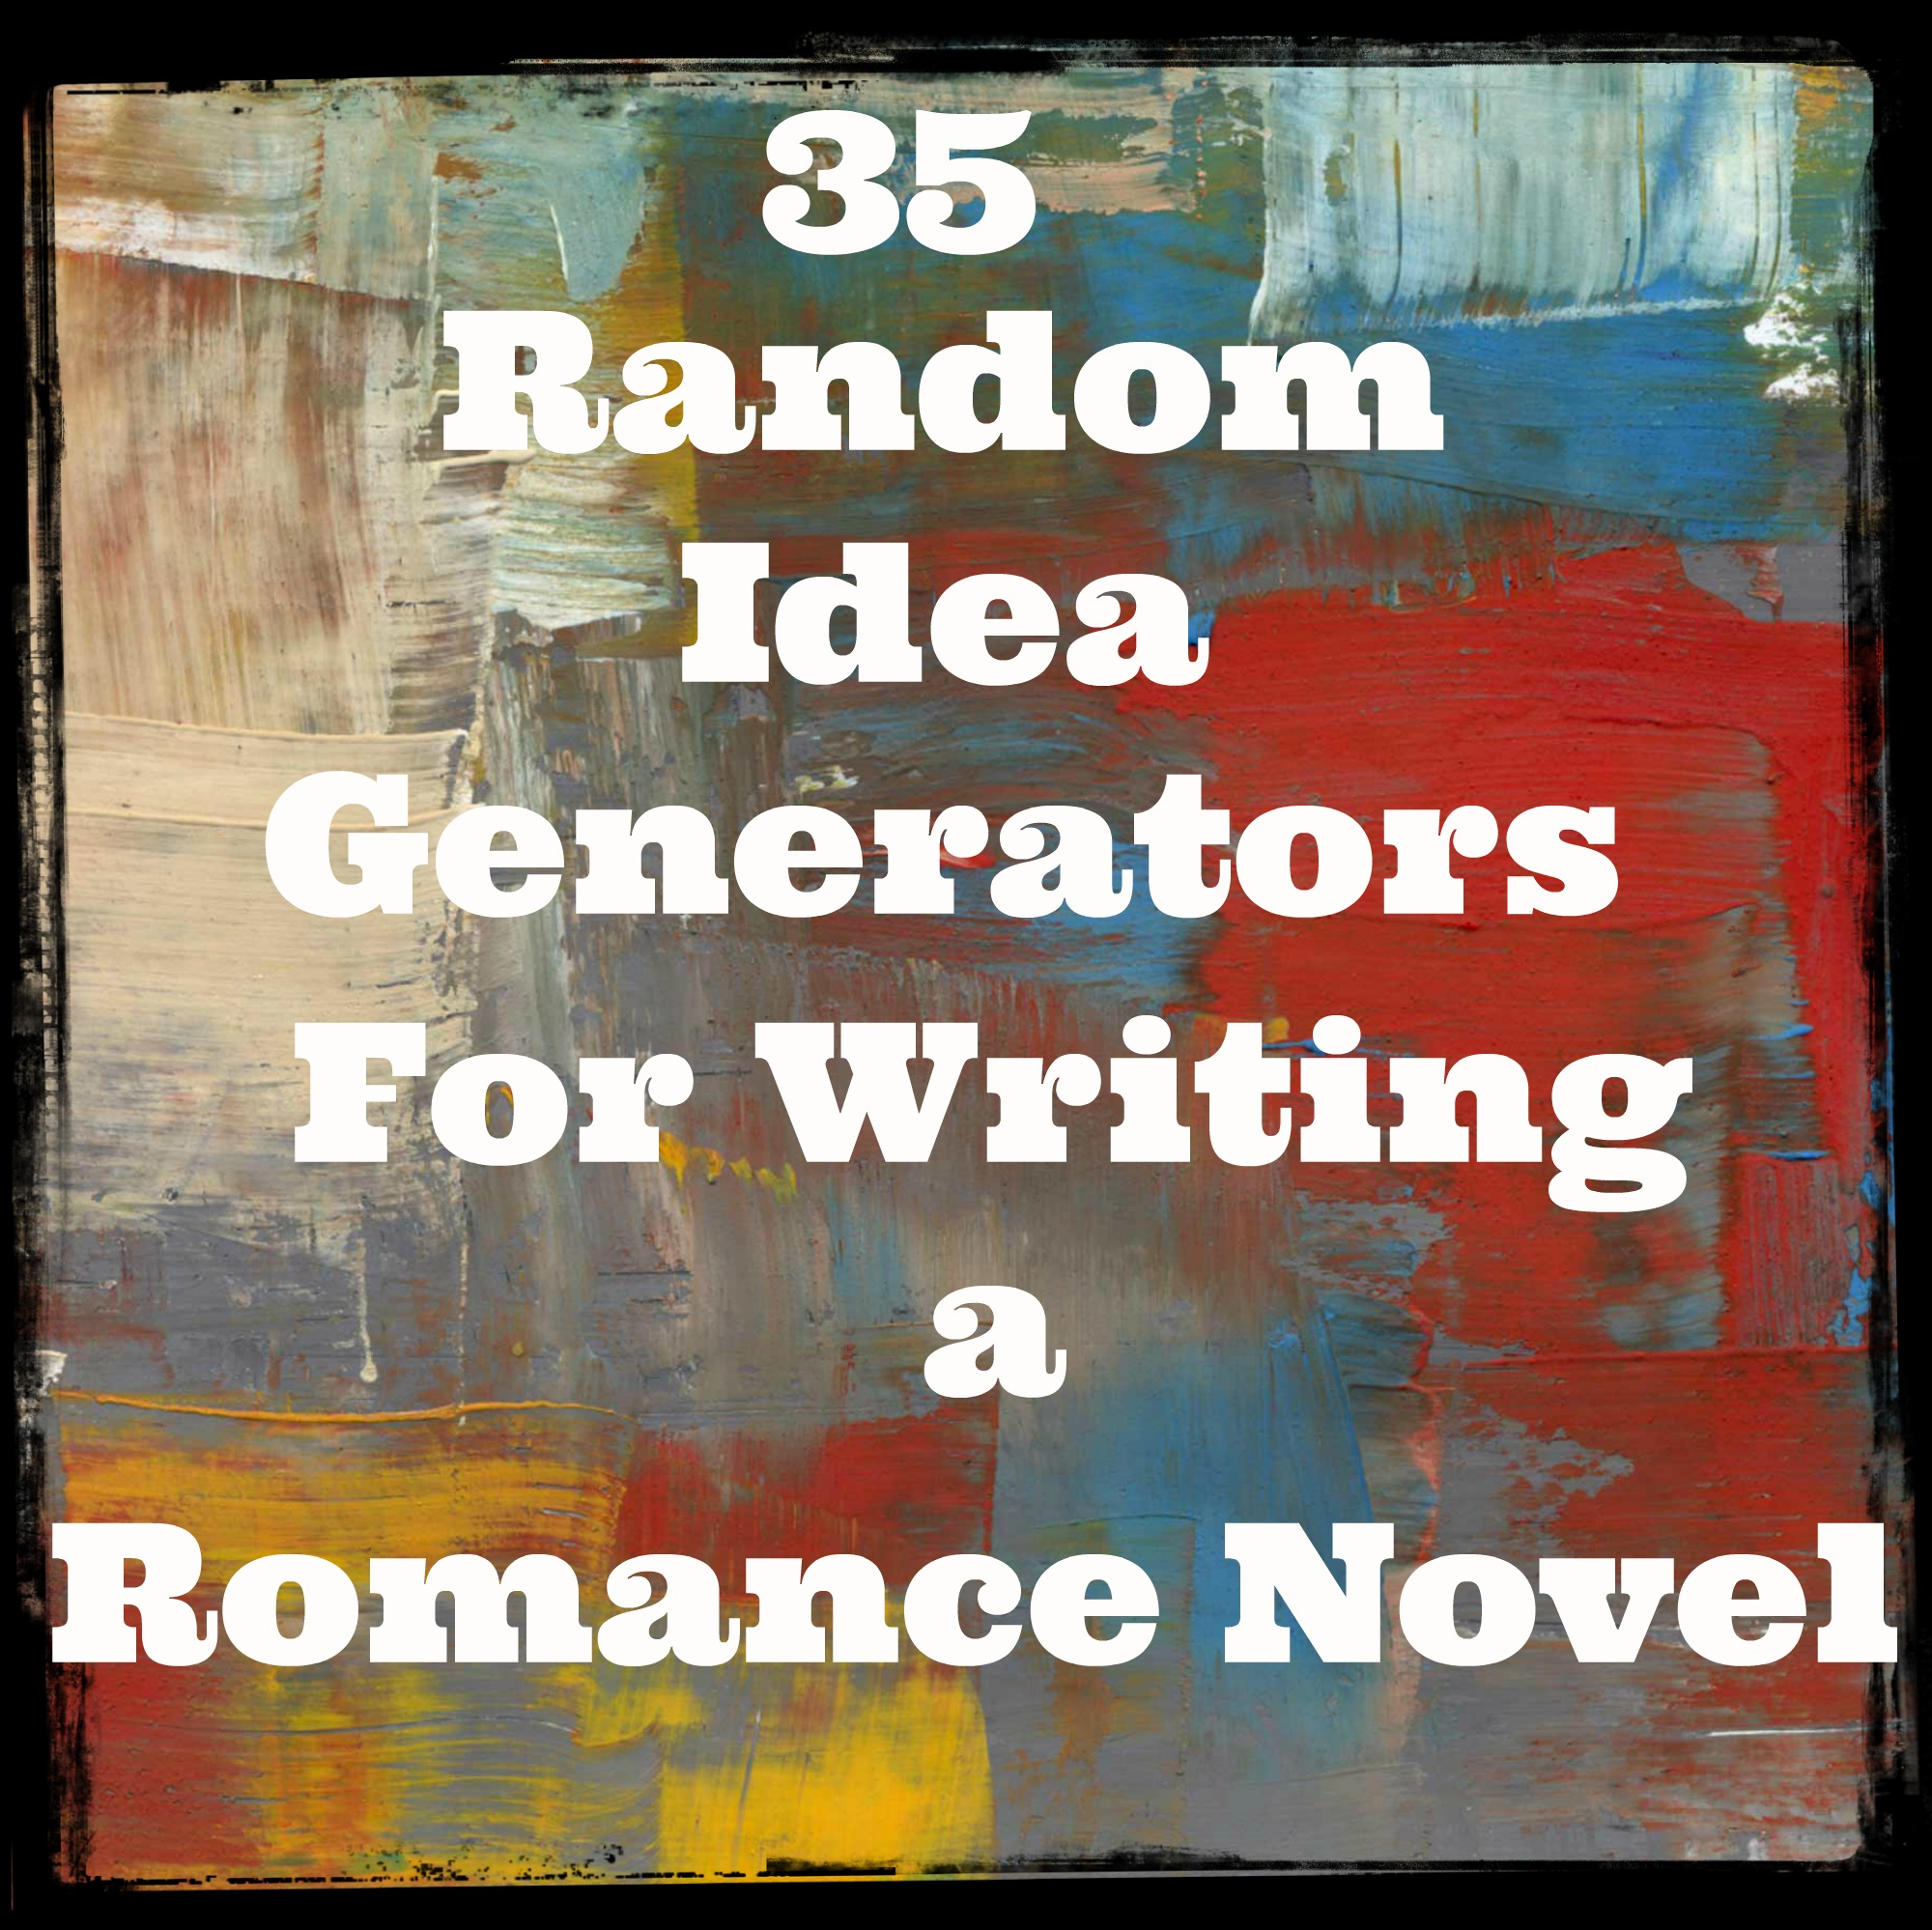 35 random idea generators for writing a romance novel | darla g. denton